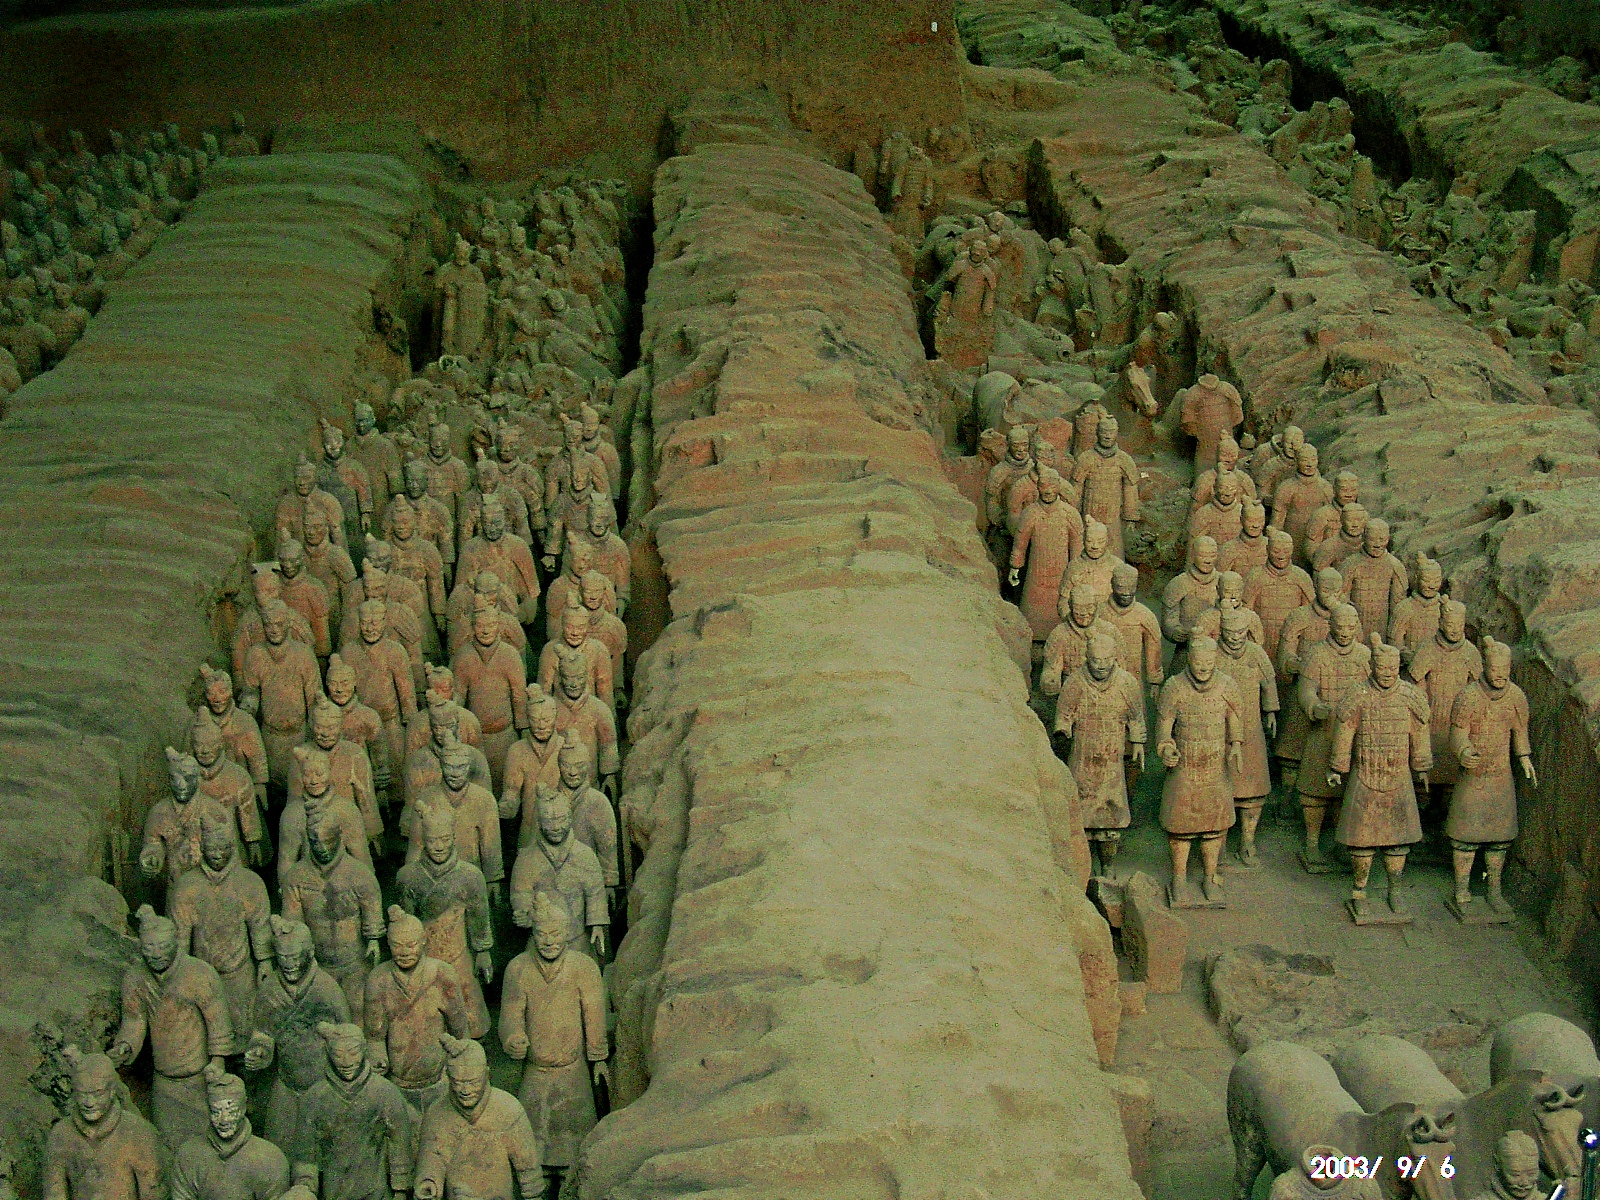 China statues Terracotta Army